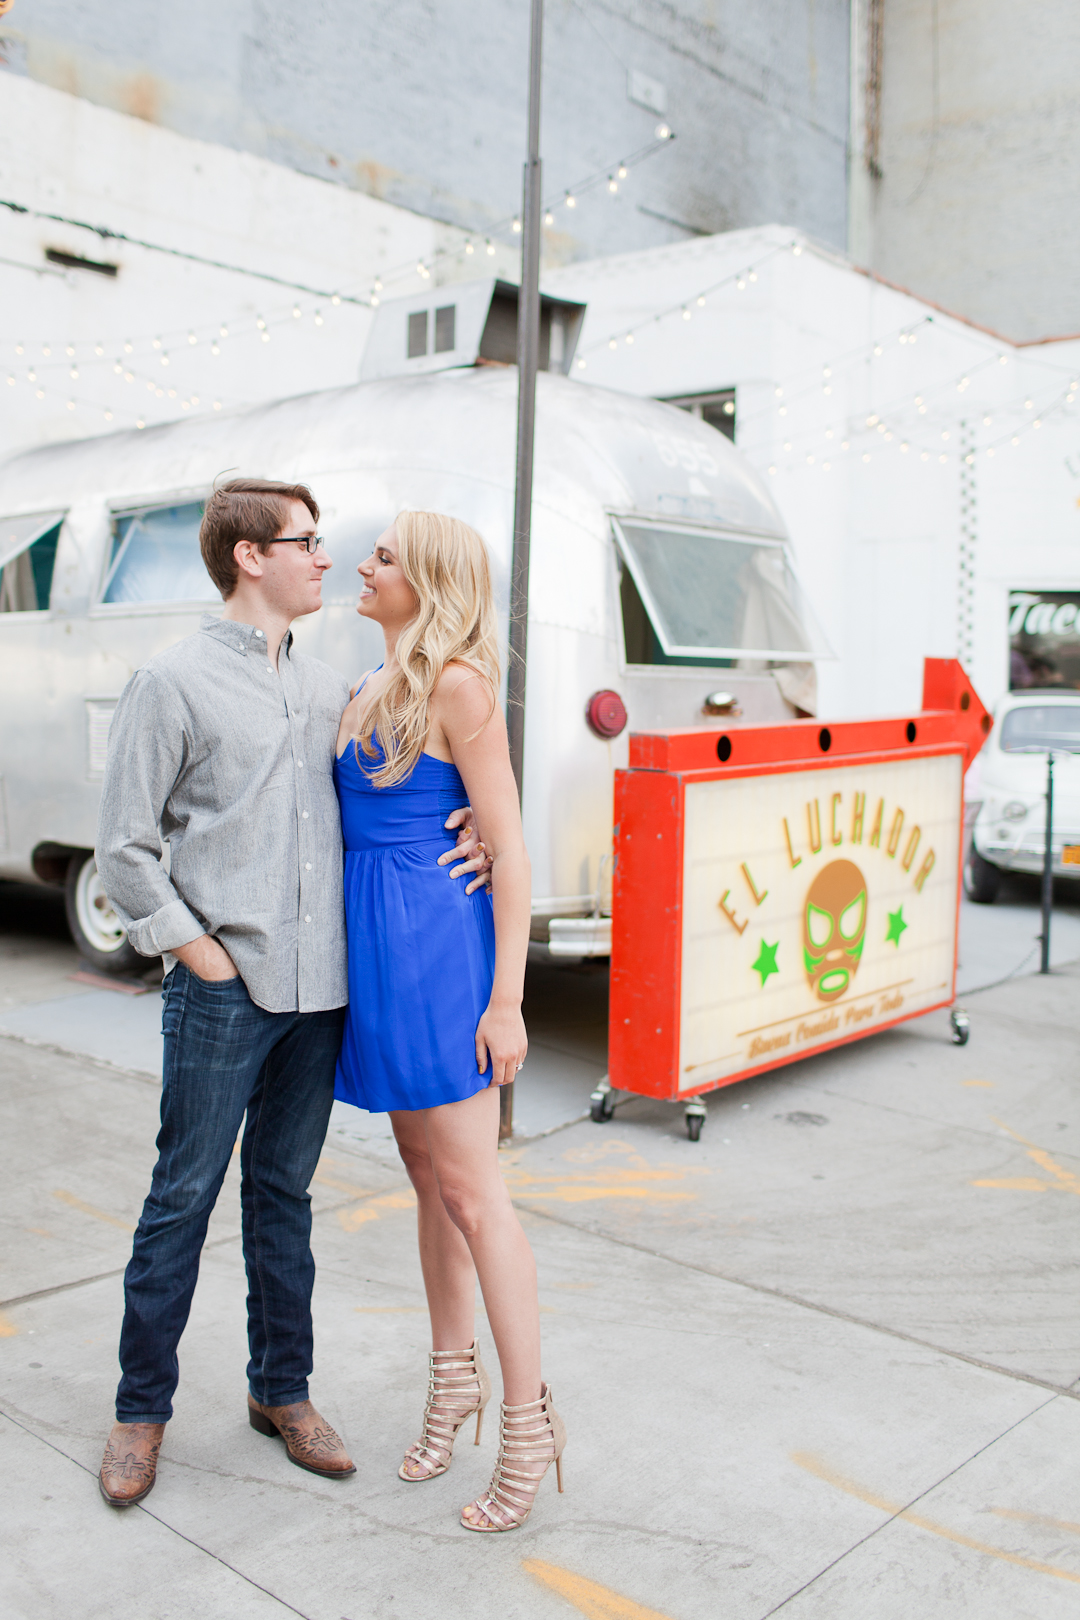 Melissa Kruse Photography - Kelley & Billy Engagement Photos-73.jpg